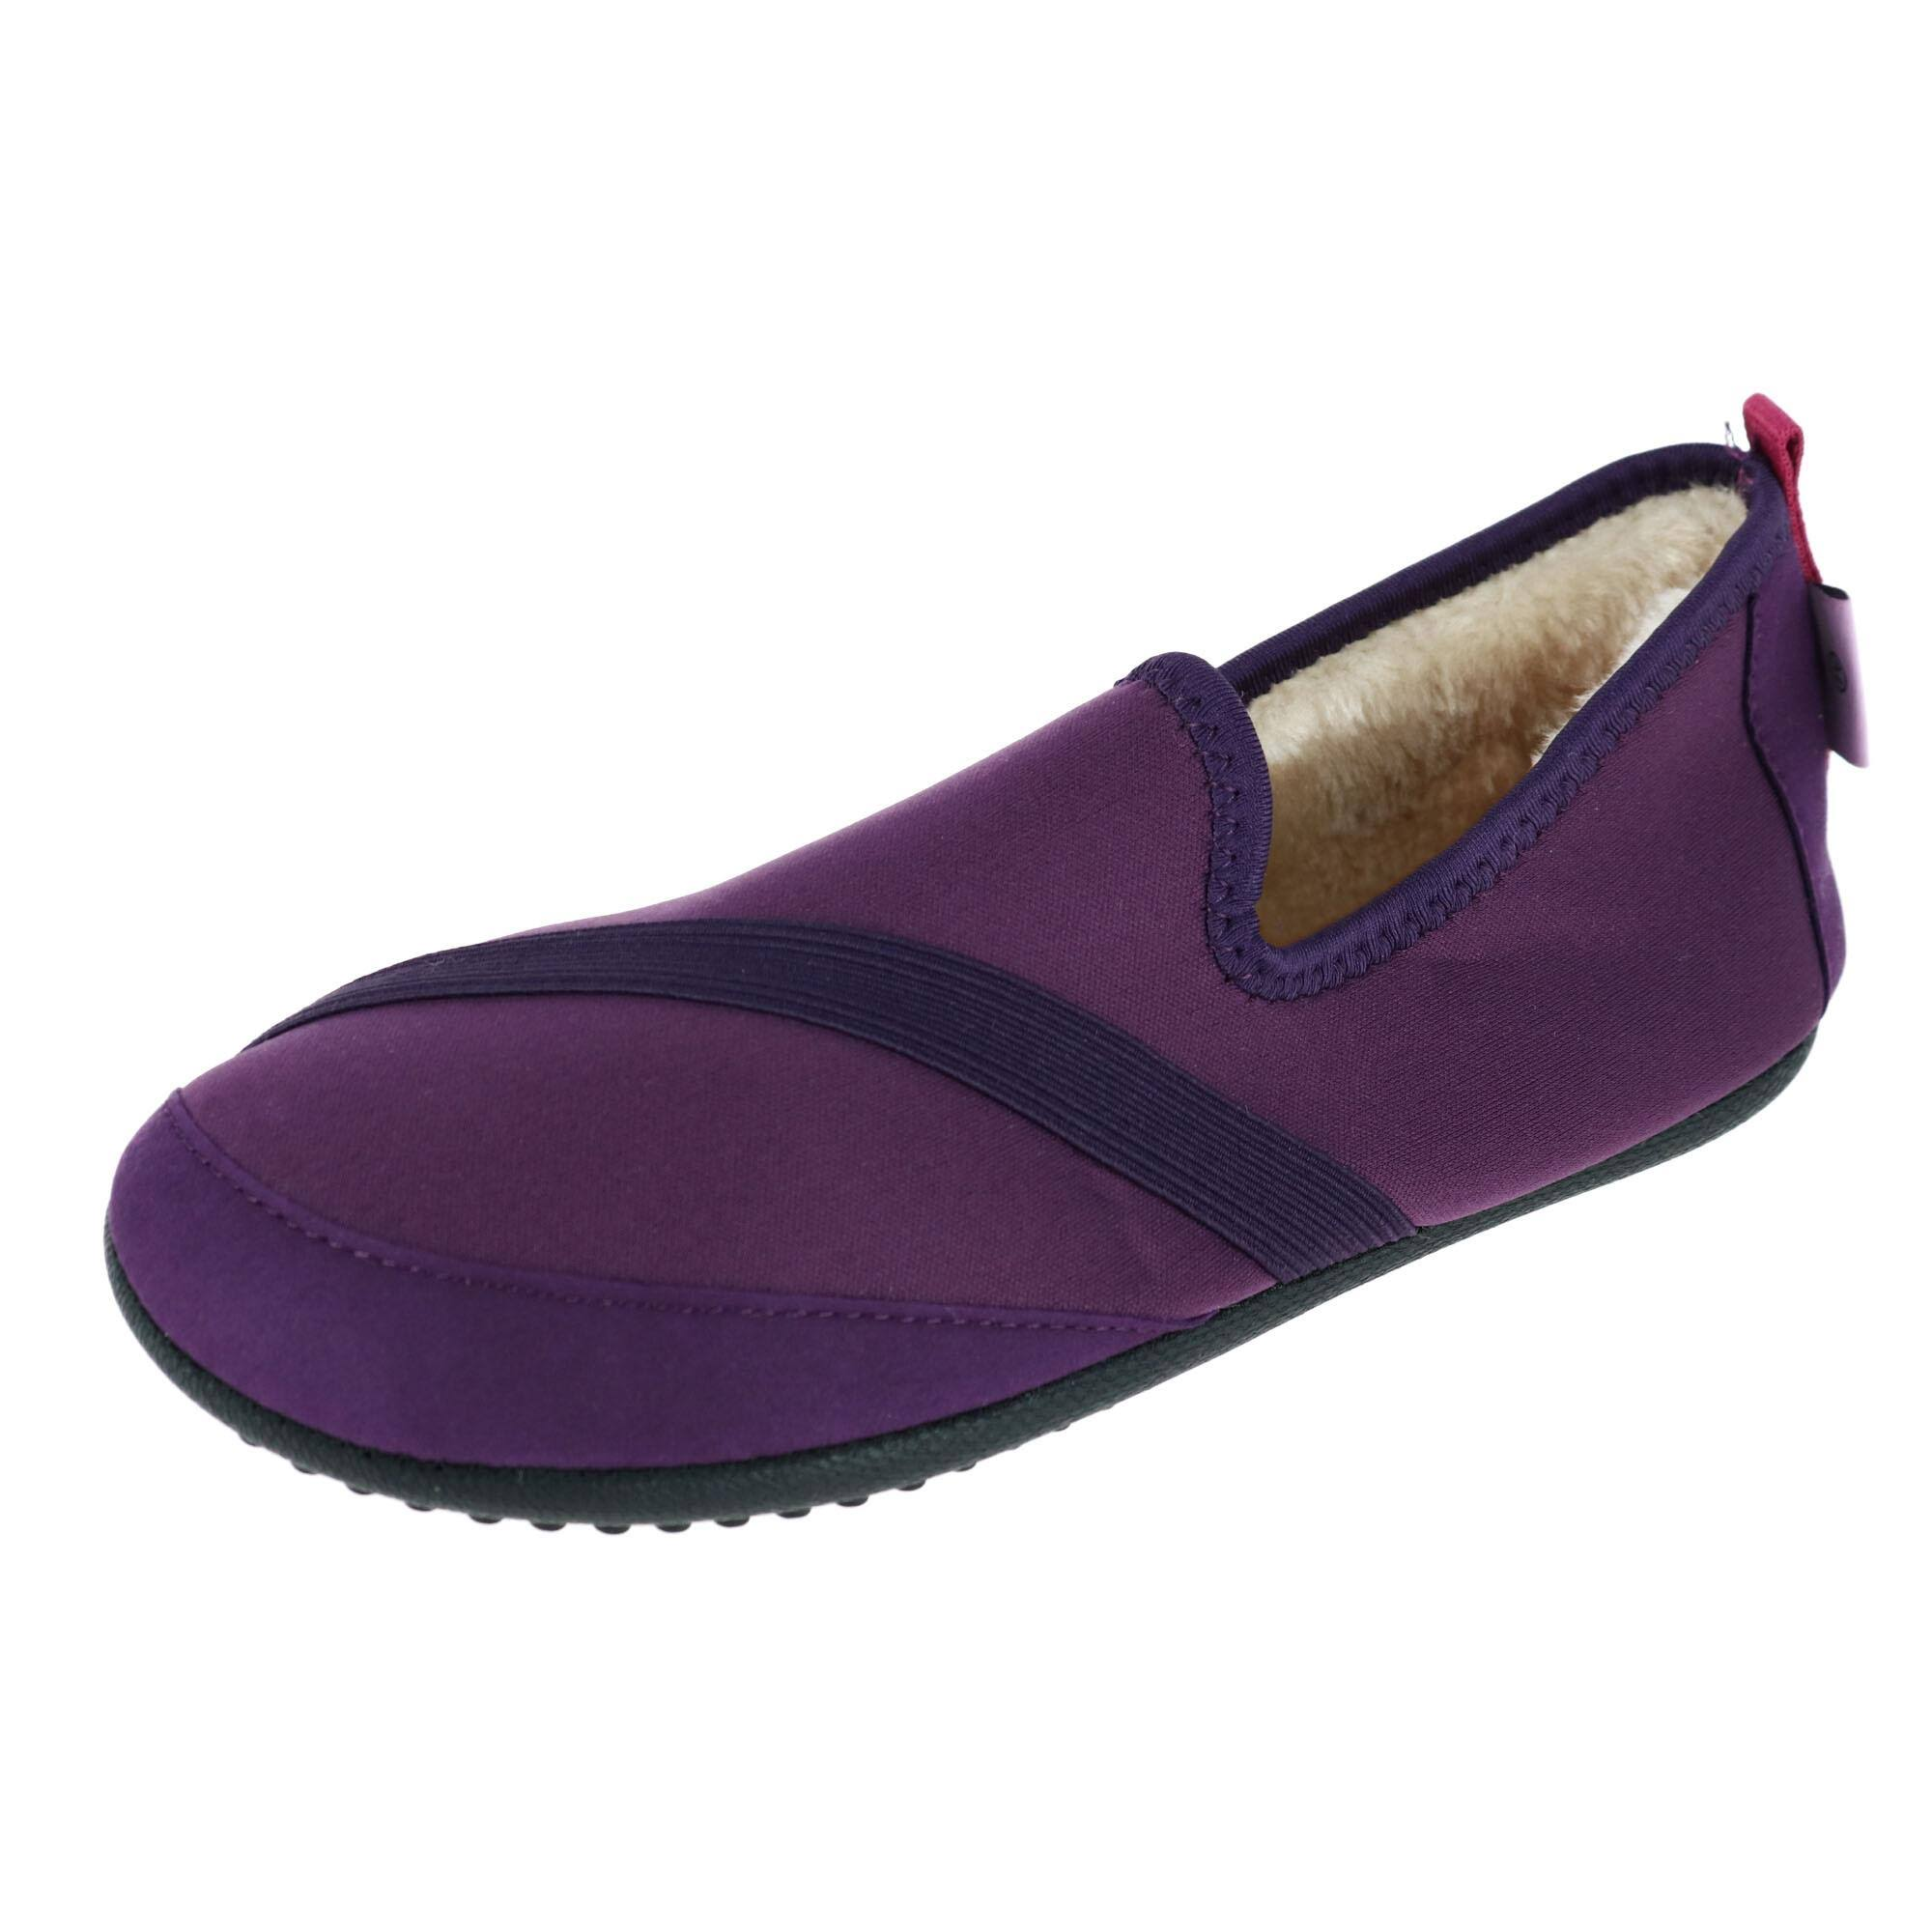 Fit Kicks Women's Solid Kozi Kicks Insulated Slippers - Purple, Medium